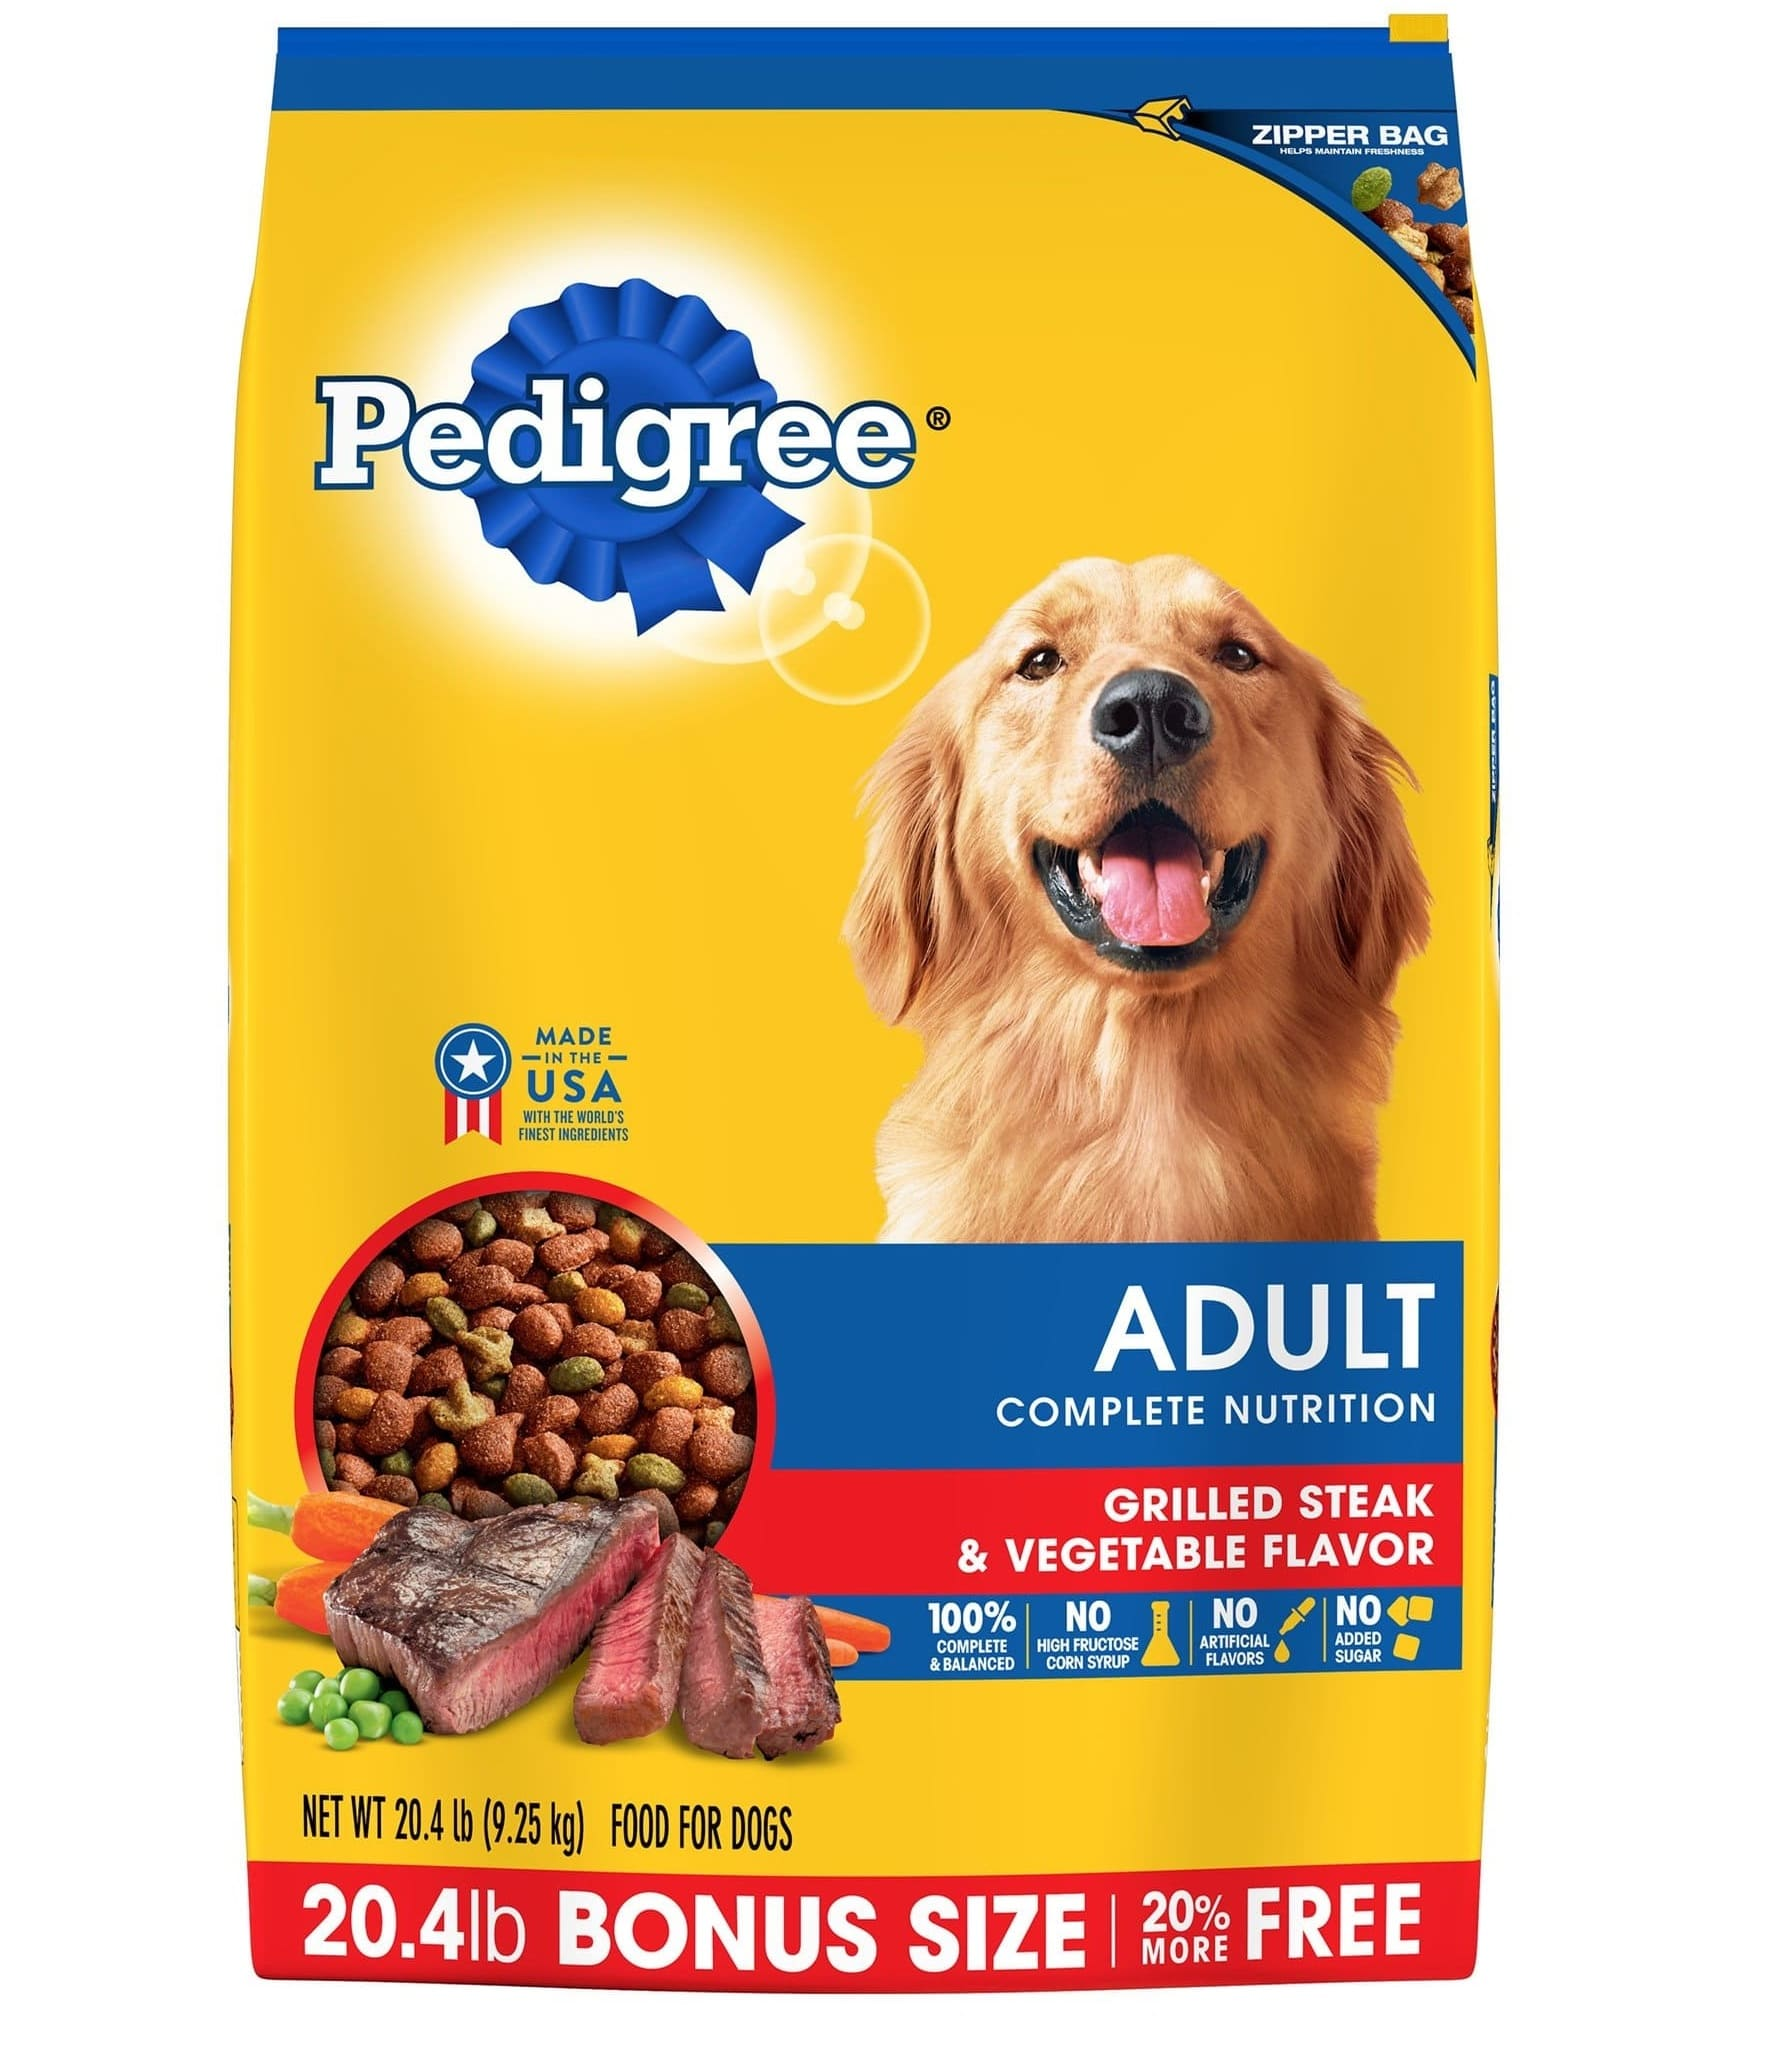 Pedigree available and affordable pet food